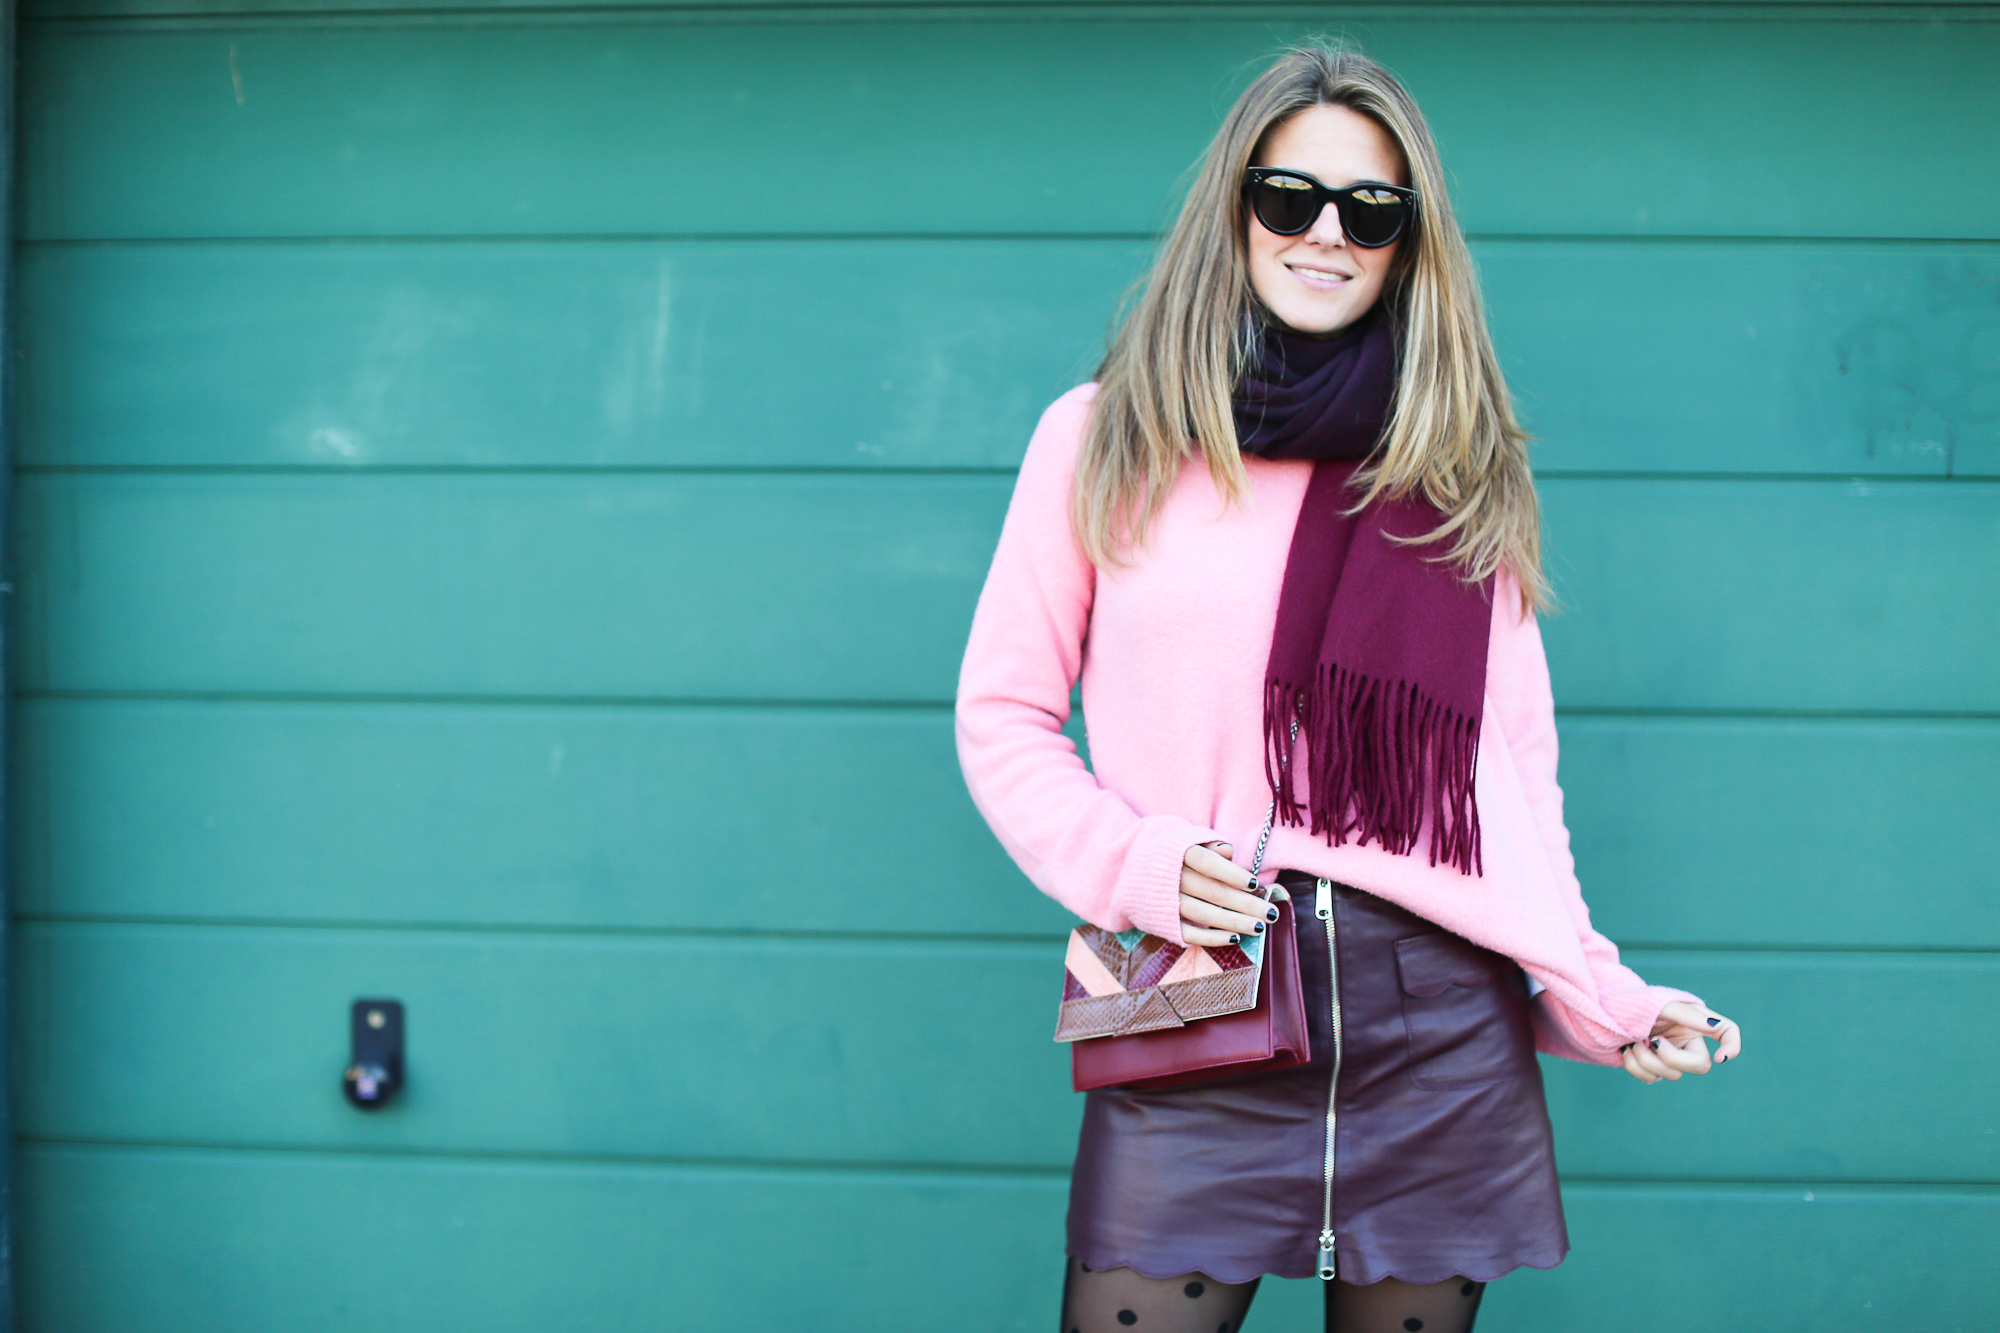 Clochet_streetstyle_fashionblogger_Max&Co_leatherminiskirt_andtherstories_pinksweater_celinesunglasses-5